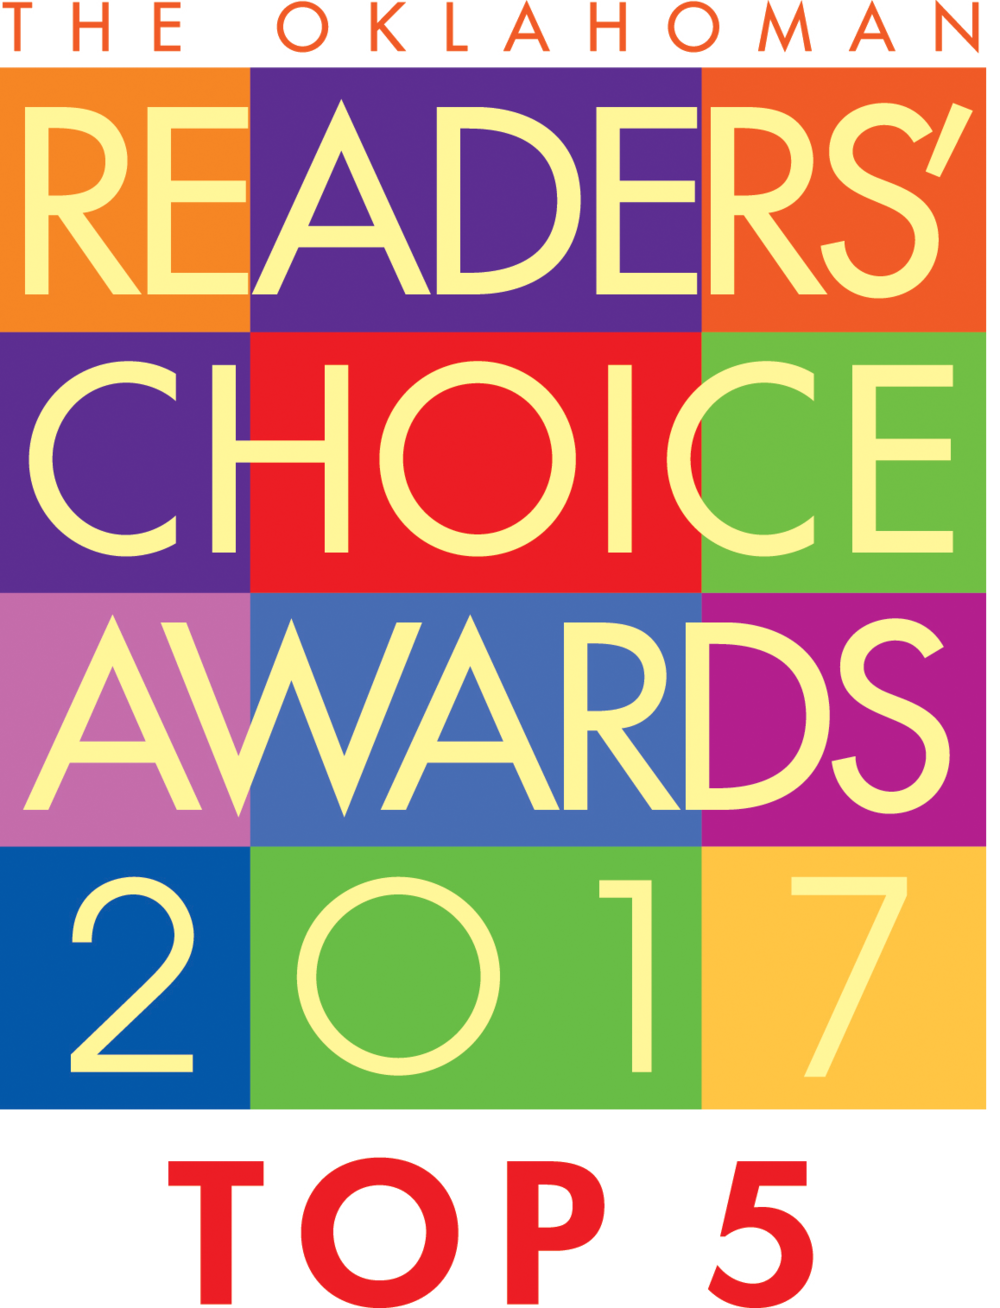 READERS_CHOICE_TOP5_2017 logo.png